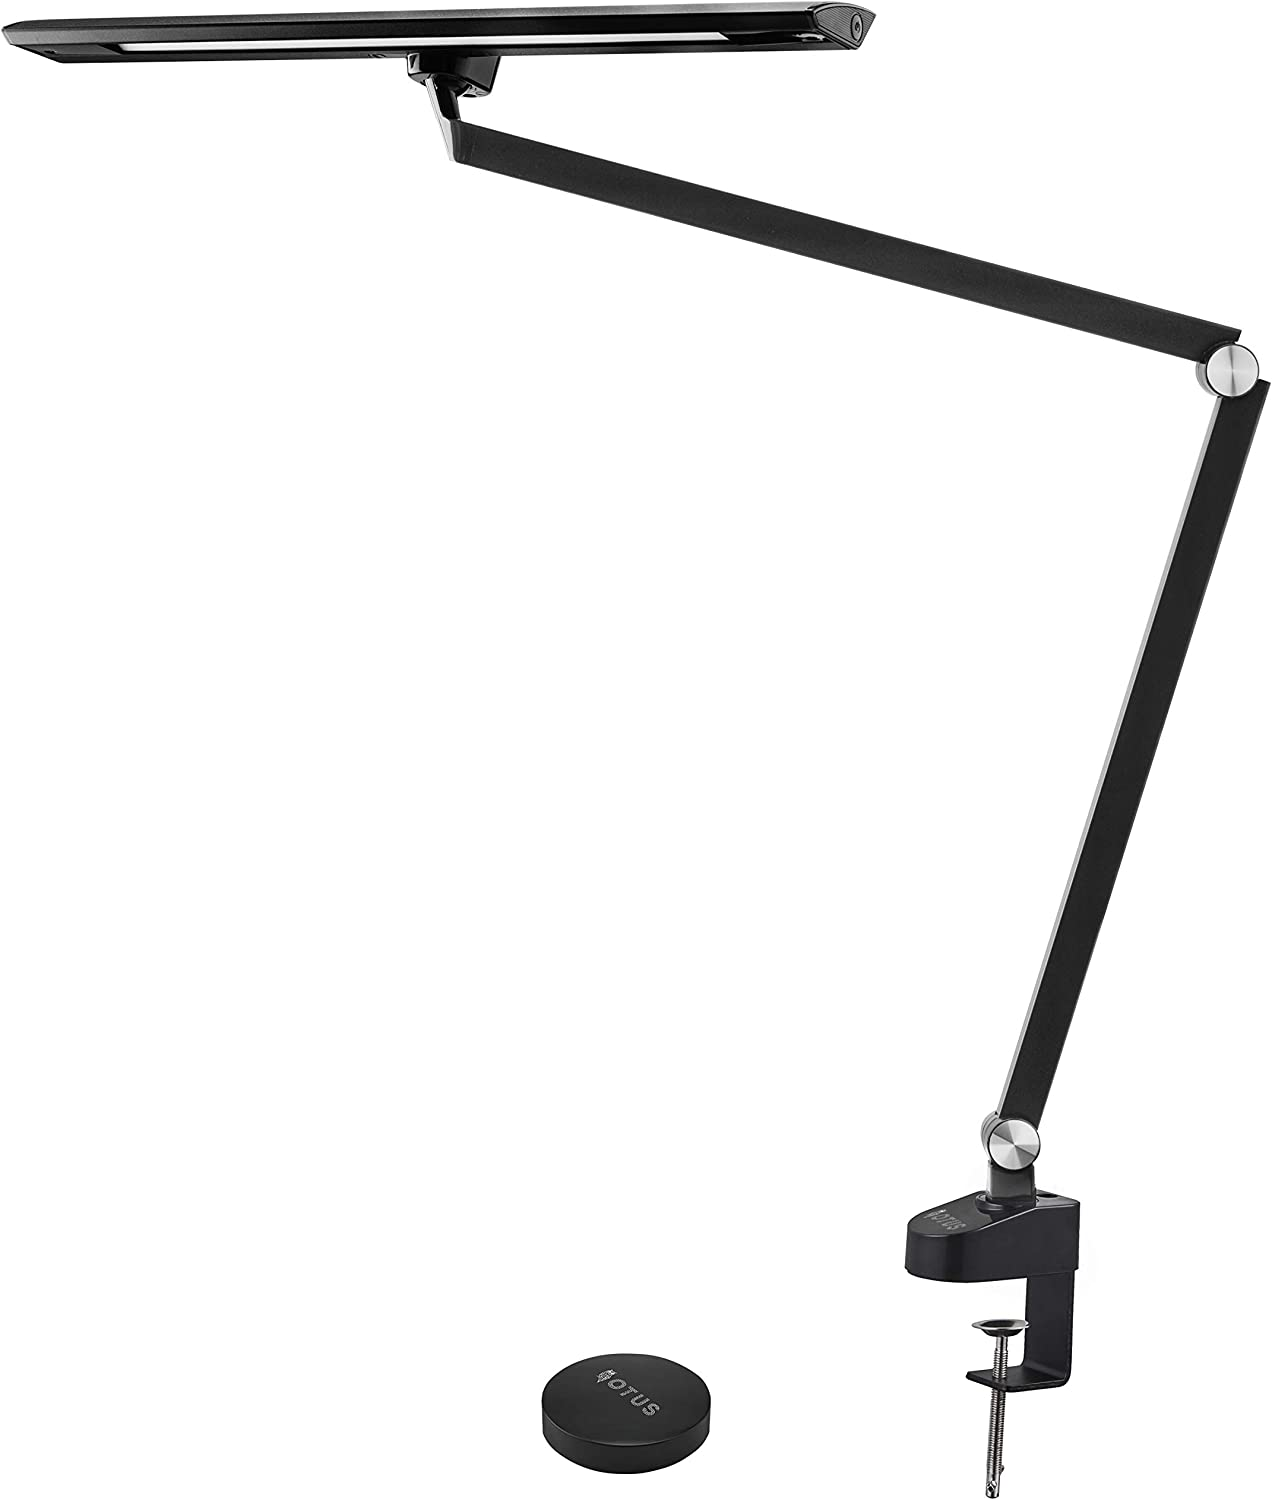 OTUS Architect Desk Lamp Clamp - 12W Bright Eye-Care Tall Task Light Office - Adjustable Swing Arm Drafting Metal Table Lighting - Memory Function - Stepless Dimmer - 5 Color Modes - Remote Control